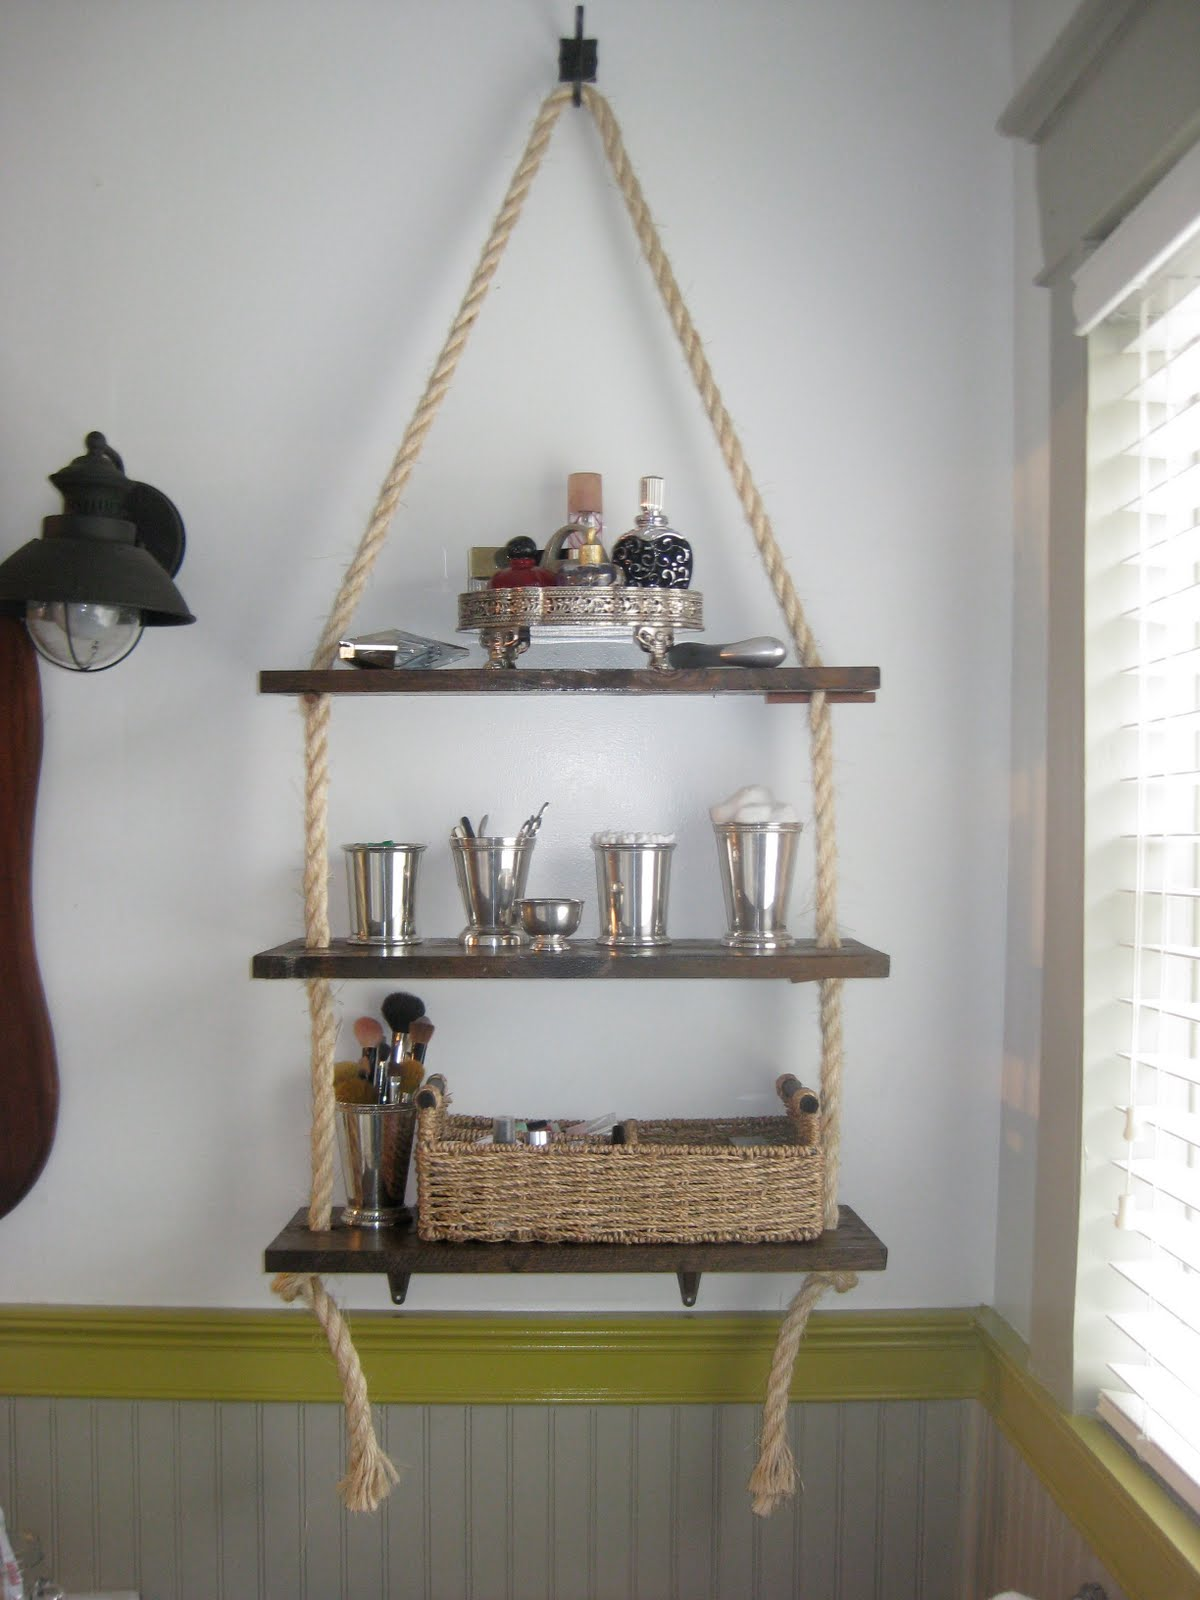 DIY Bathroom Shelving